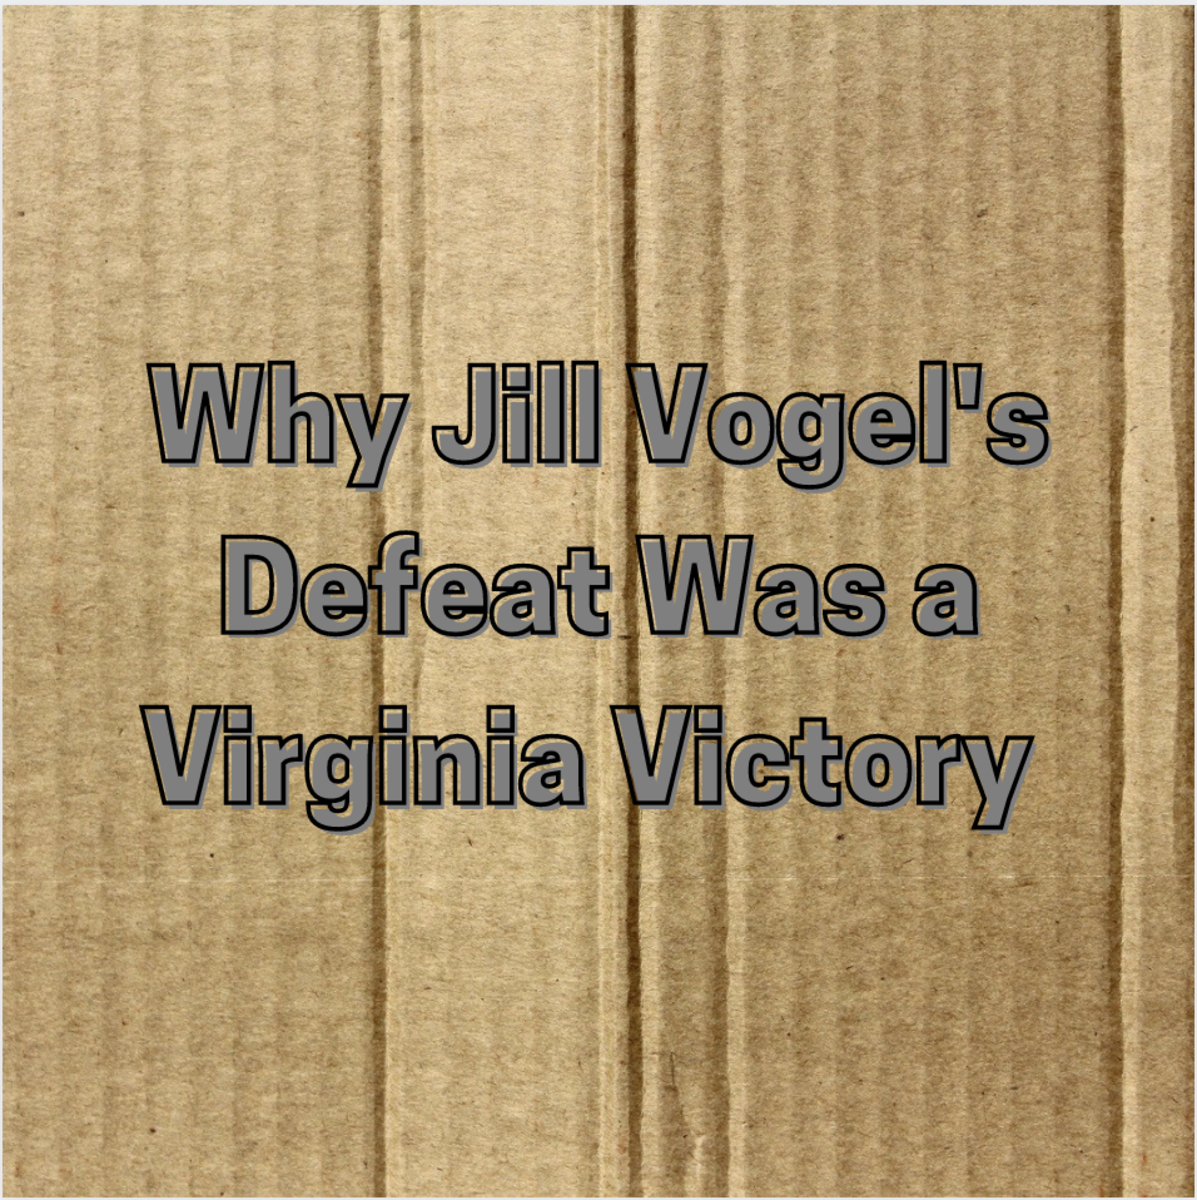 Fortunately for all Virginians, the next lieutenant governor of that same state will never be Virginia State Senator Jill Holtzman Vogel so long as people in that state remain wise to her true colors.